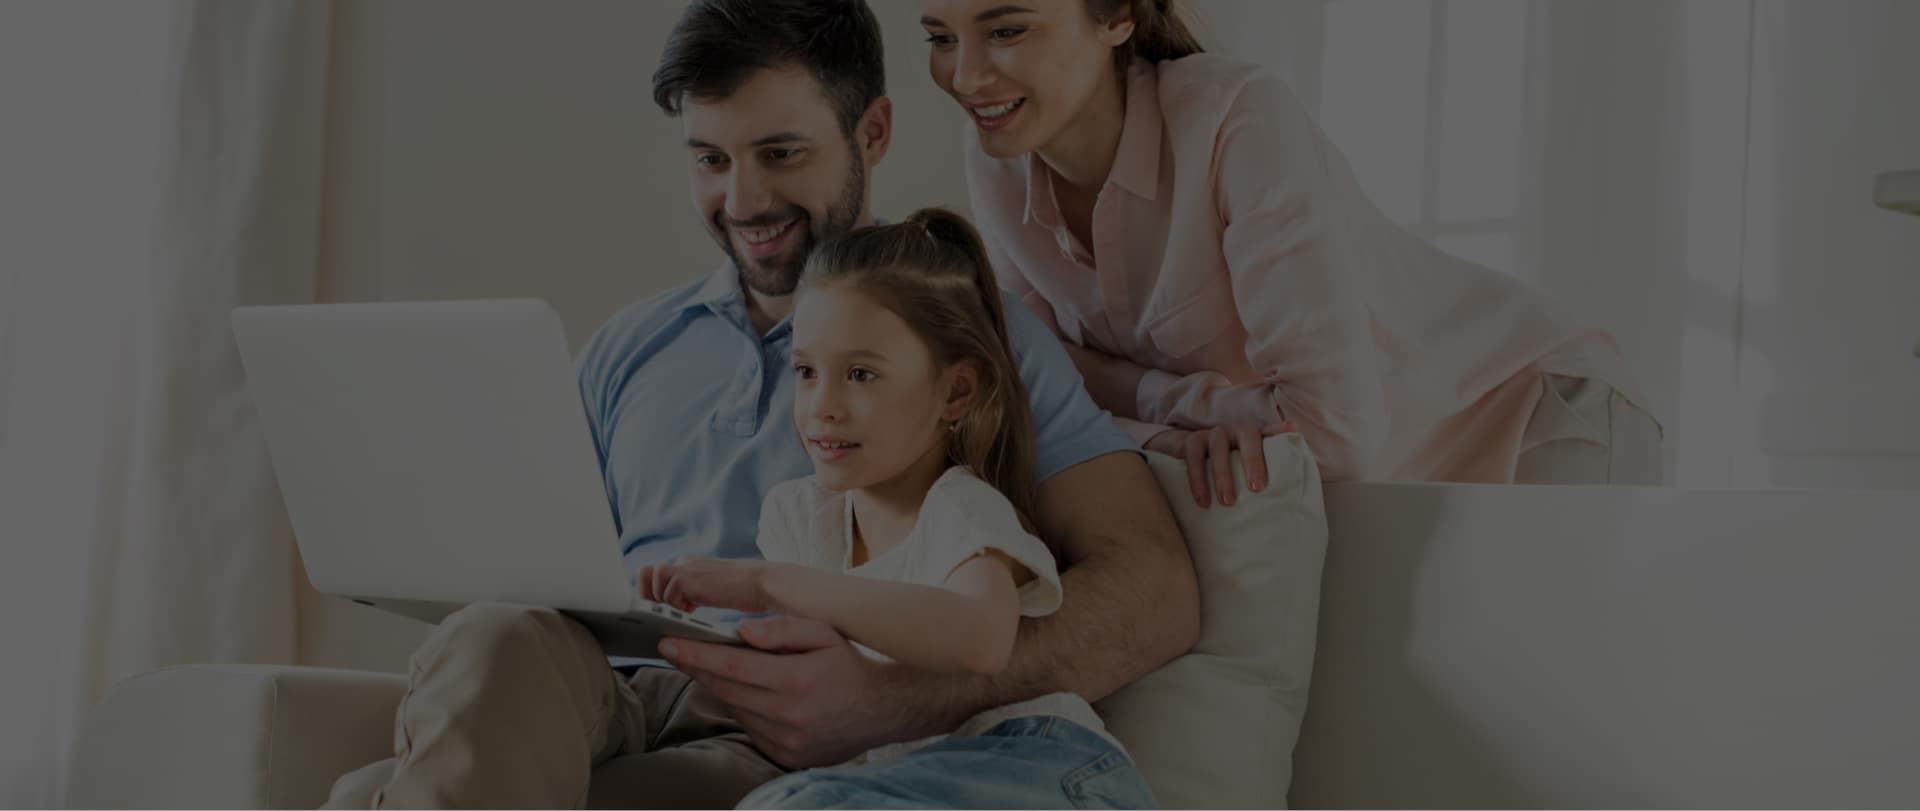 image of a family shopping for a car on a laptop